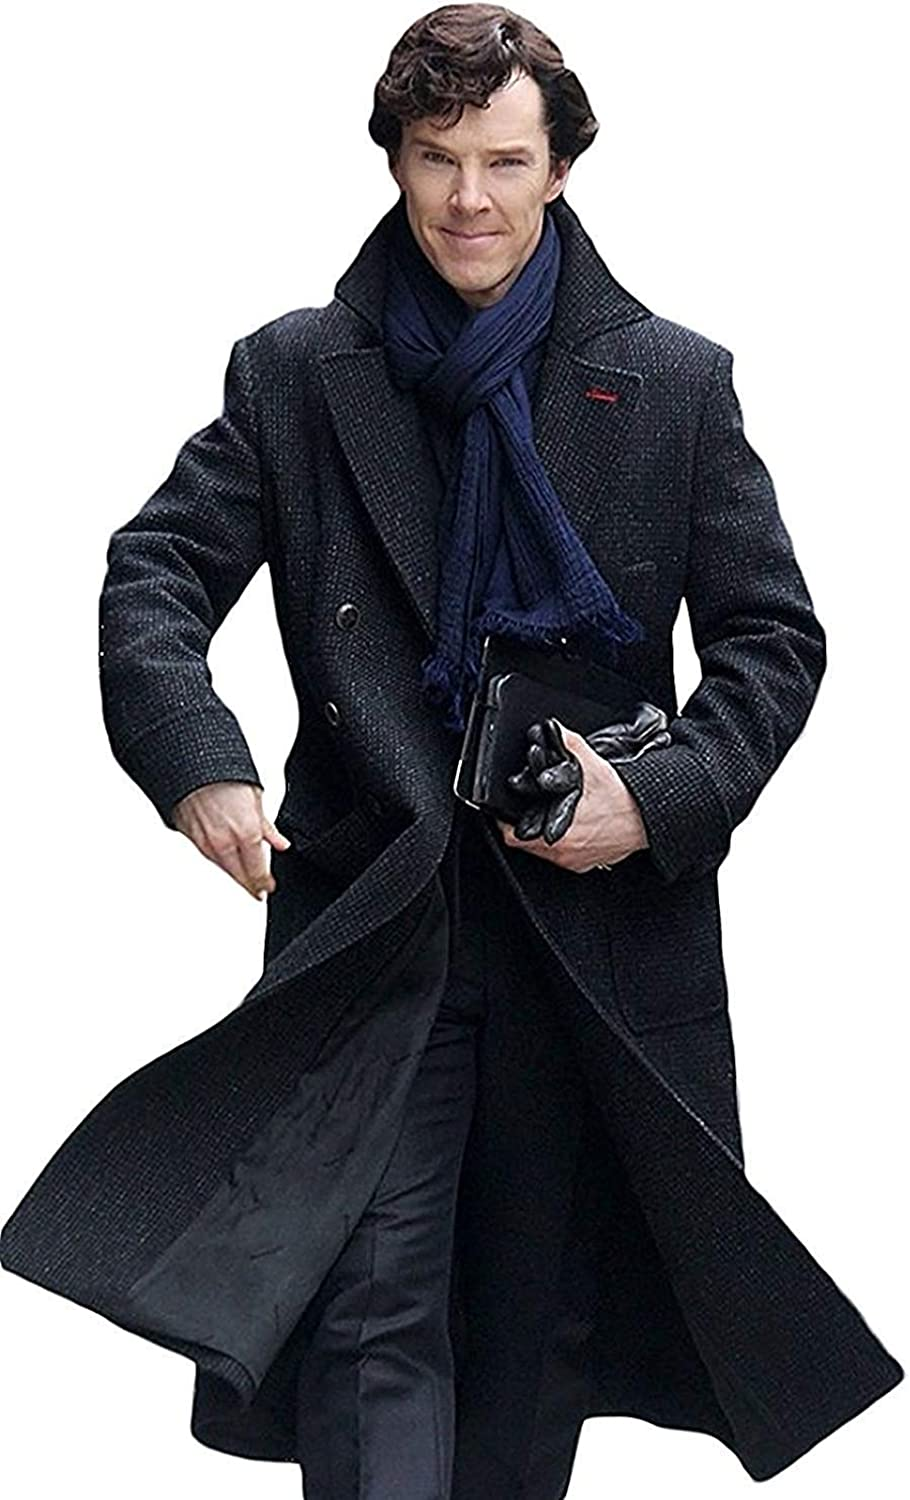 Sherlock Holmes Benedict Cumberbatch Charcoal Grey Black Wool Long Trench Coat Jacket